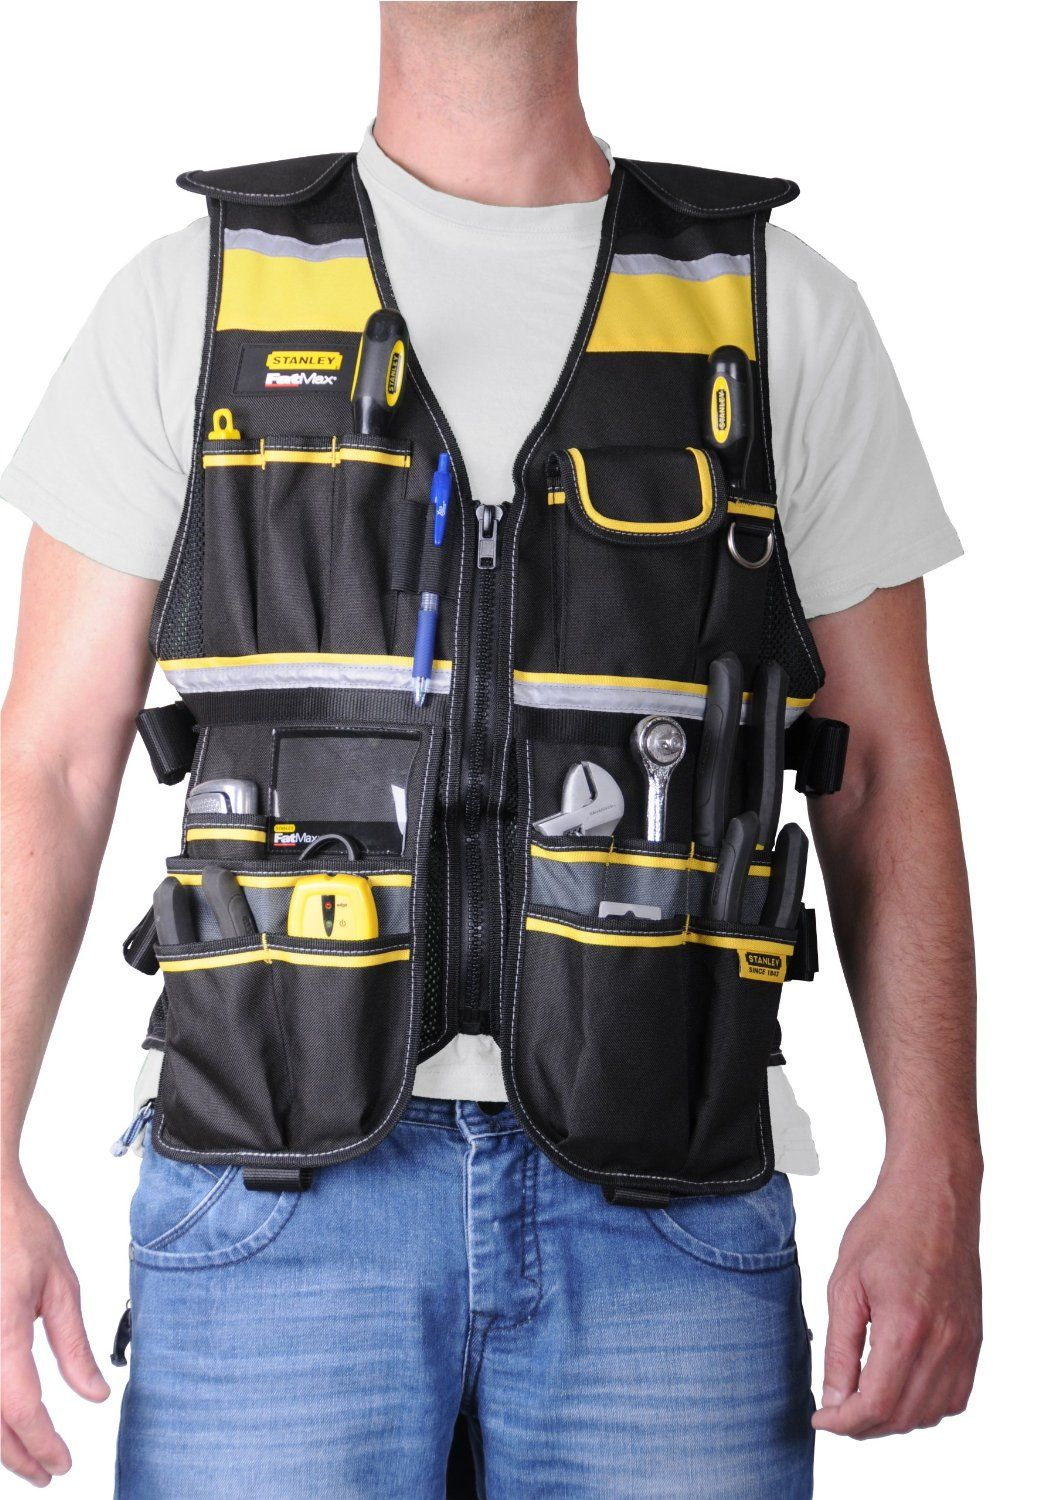 Electrician Tool Apron Work Wear Utility Carpenter Apron Pouch Bags Pocket Vest